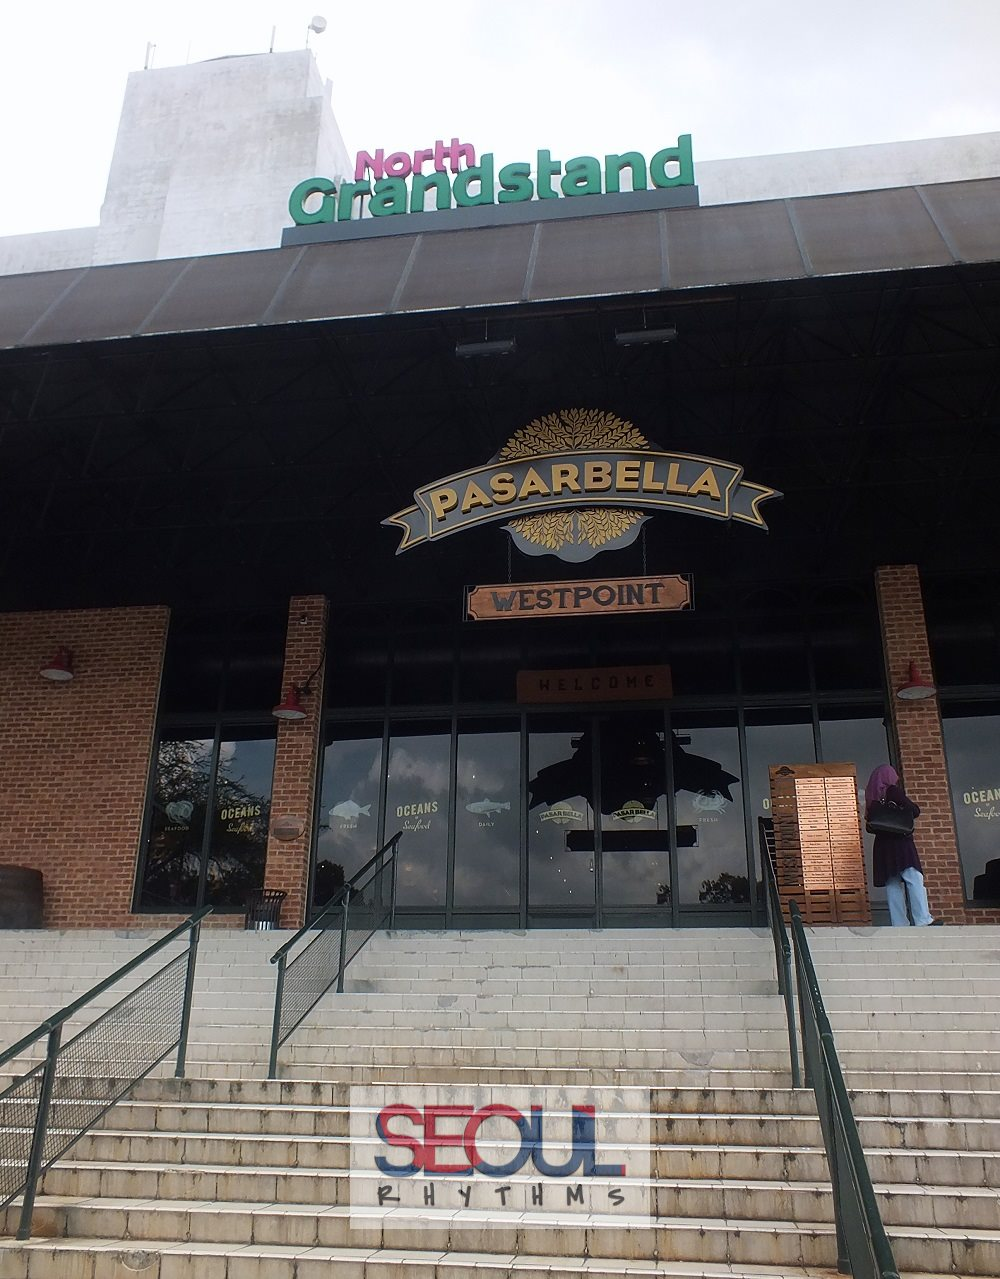 The Grand Stand